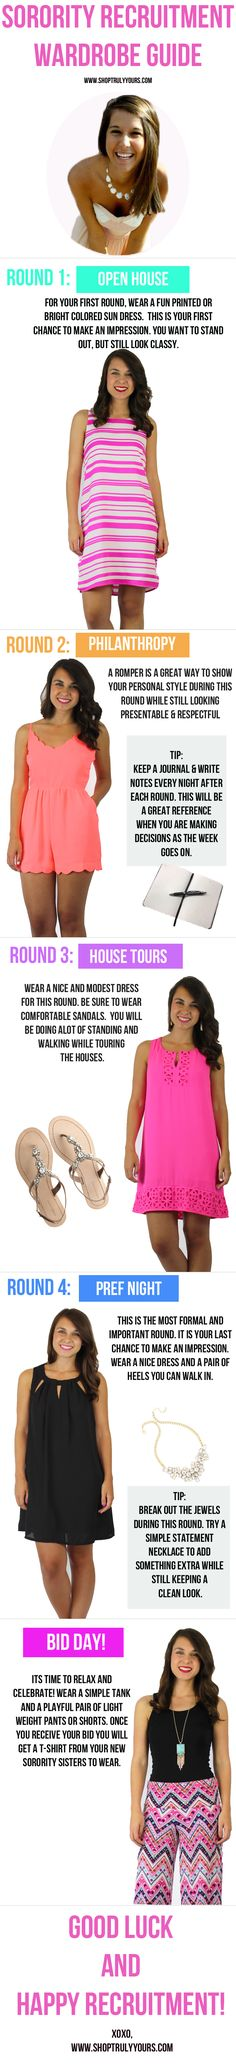 Sorority recruitment outfits and tips | What to wear during each round of sorority recruitment.